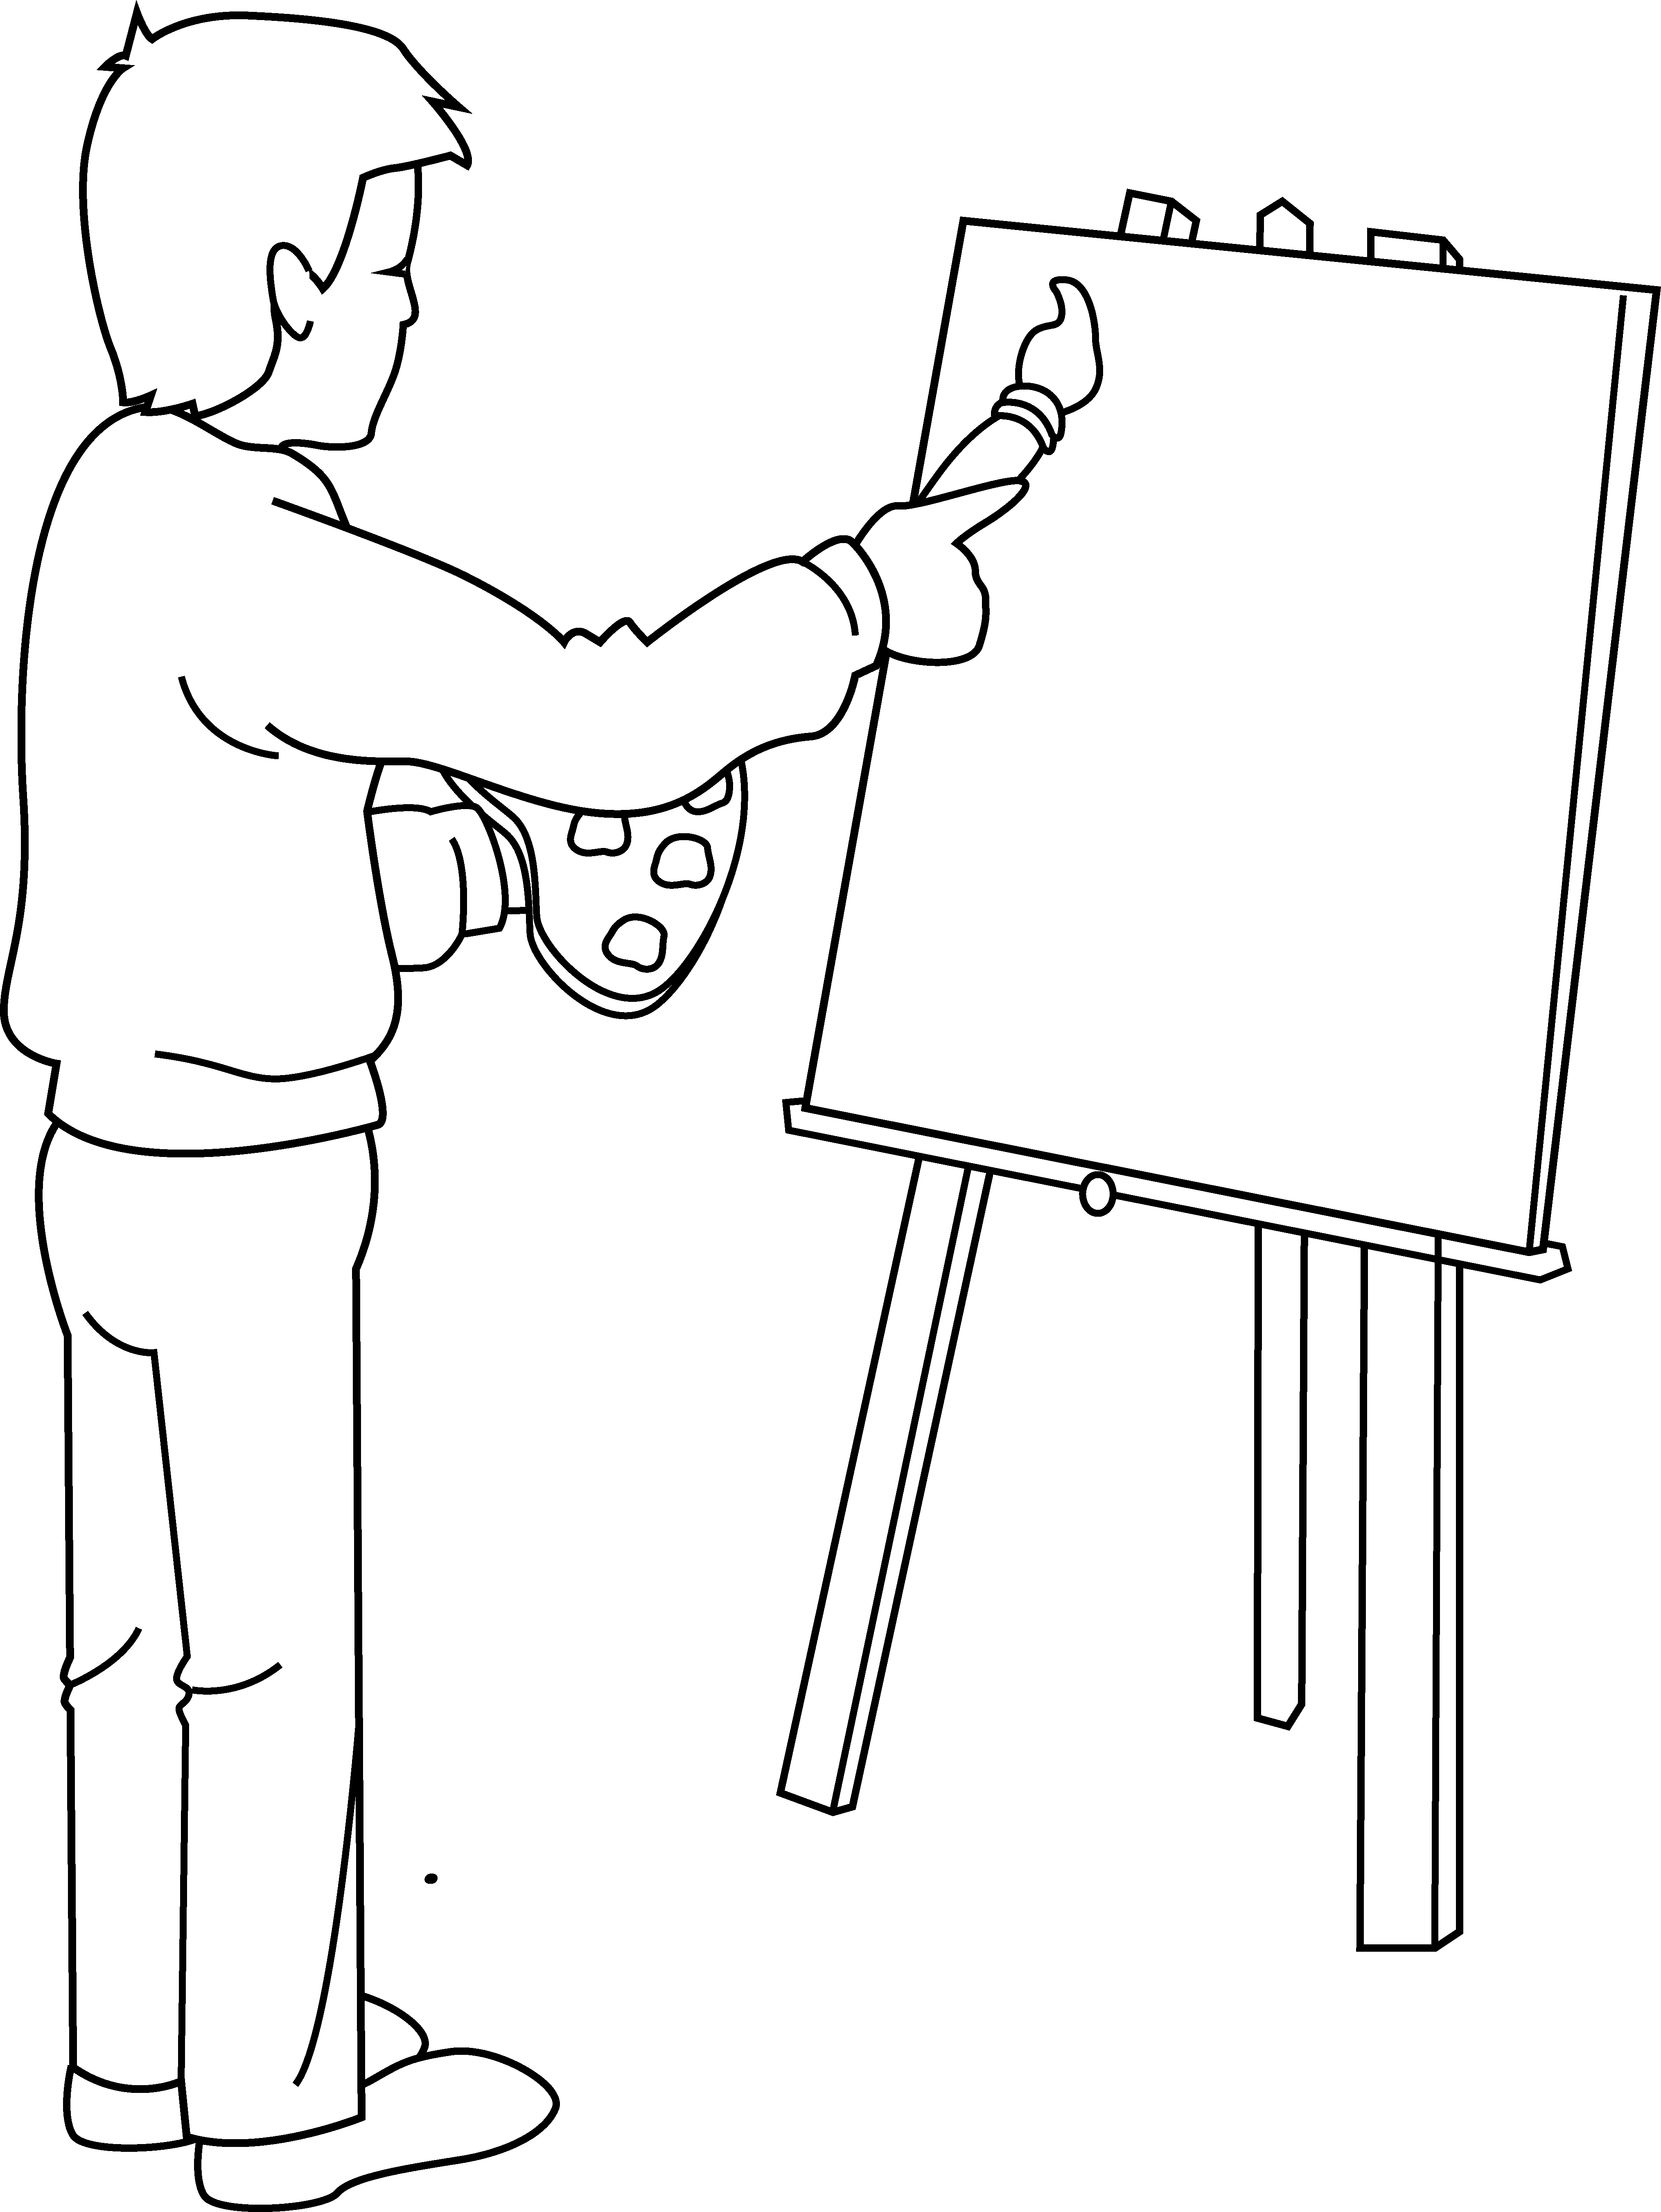 Free Painter Clipart Black And White, Download Free Clip Art.